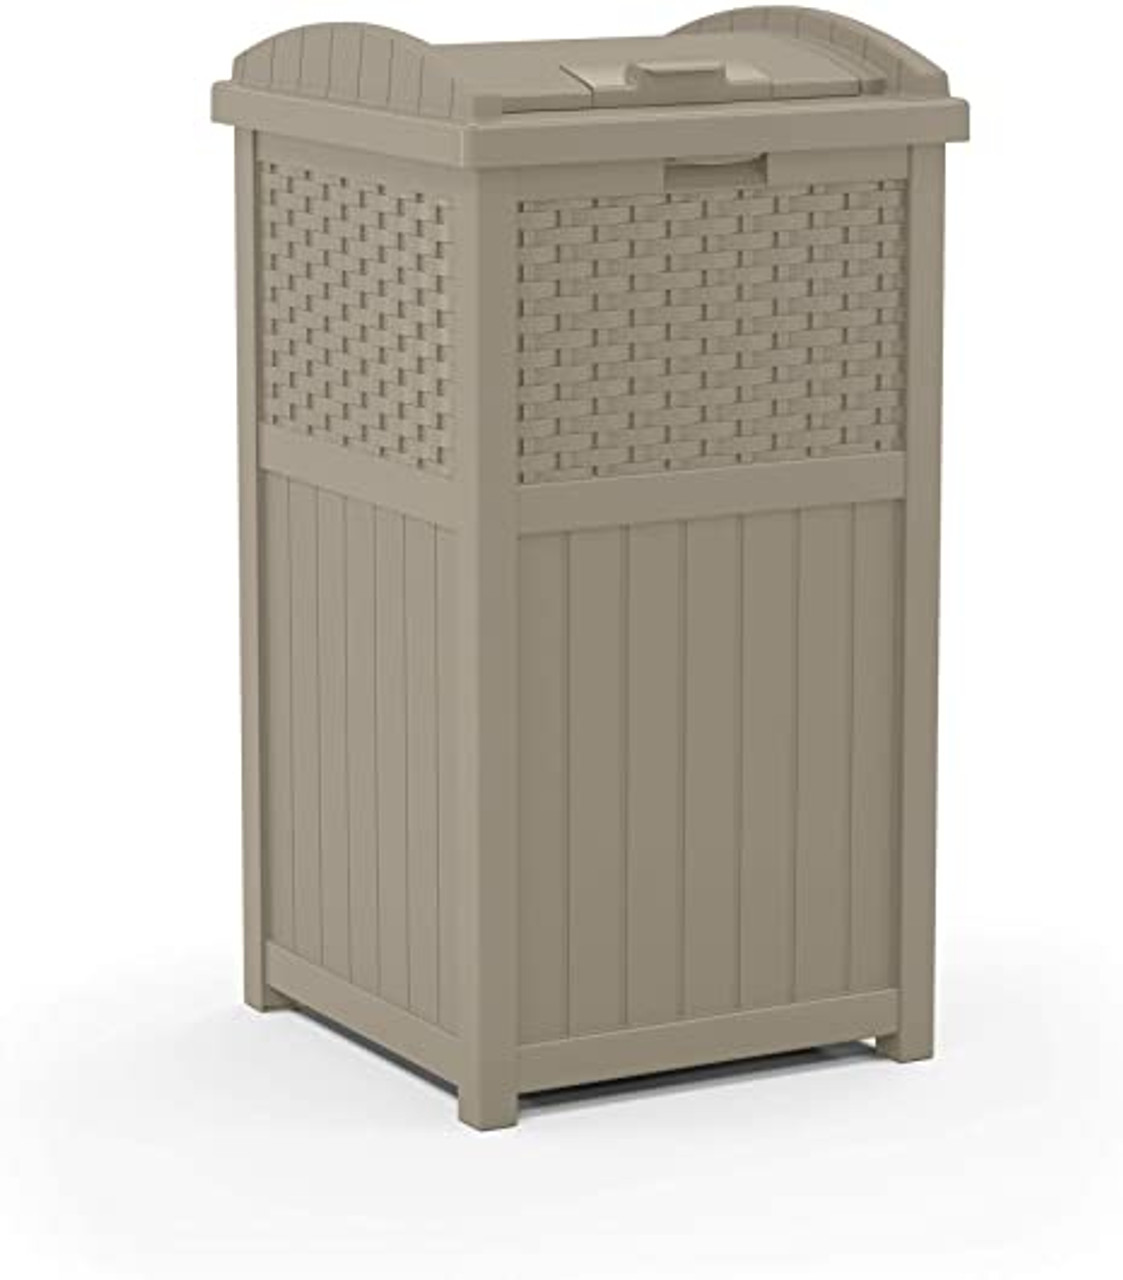 Wicker Dark Taupe Trash Can GHW1732DT for Deck or Patio